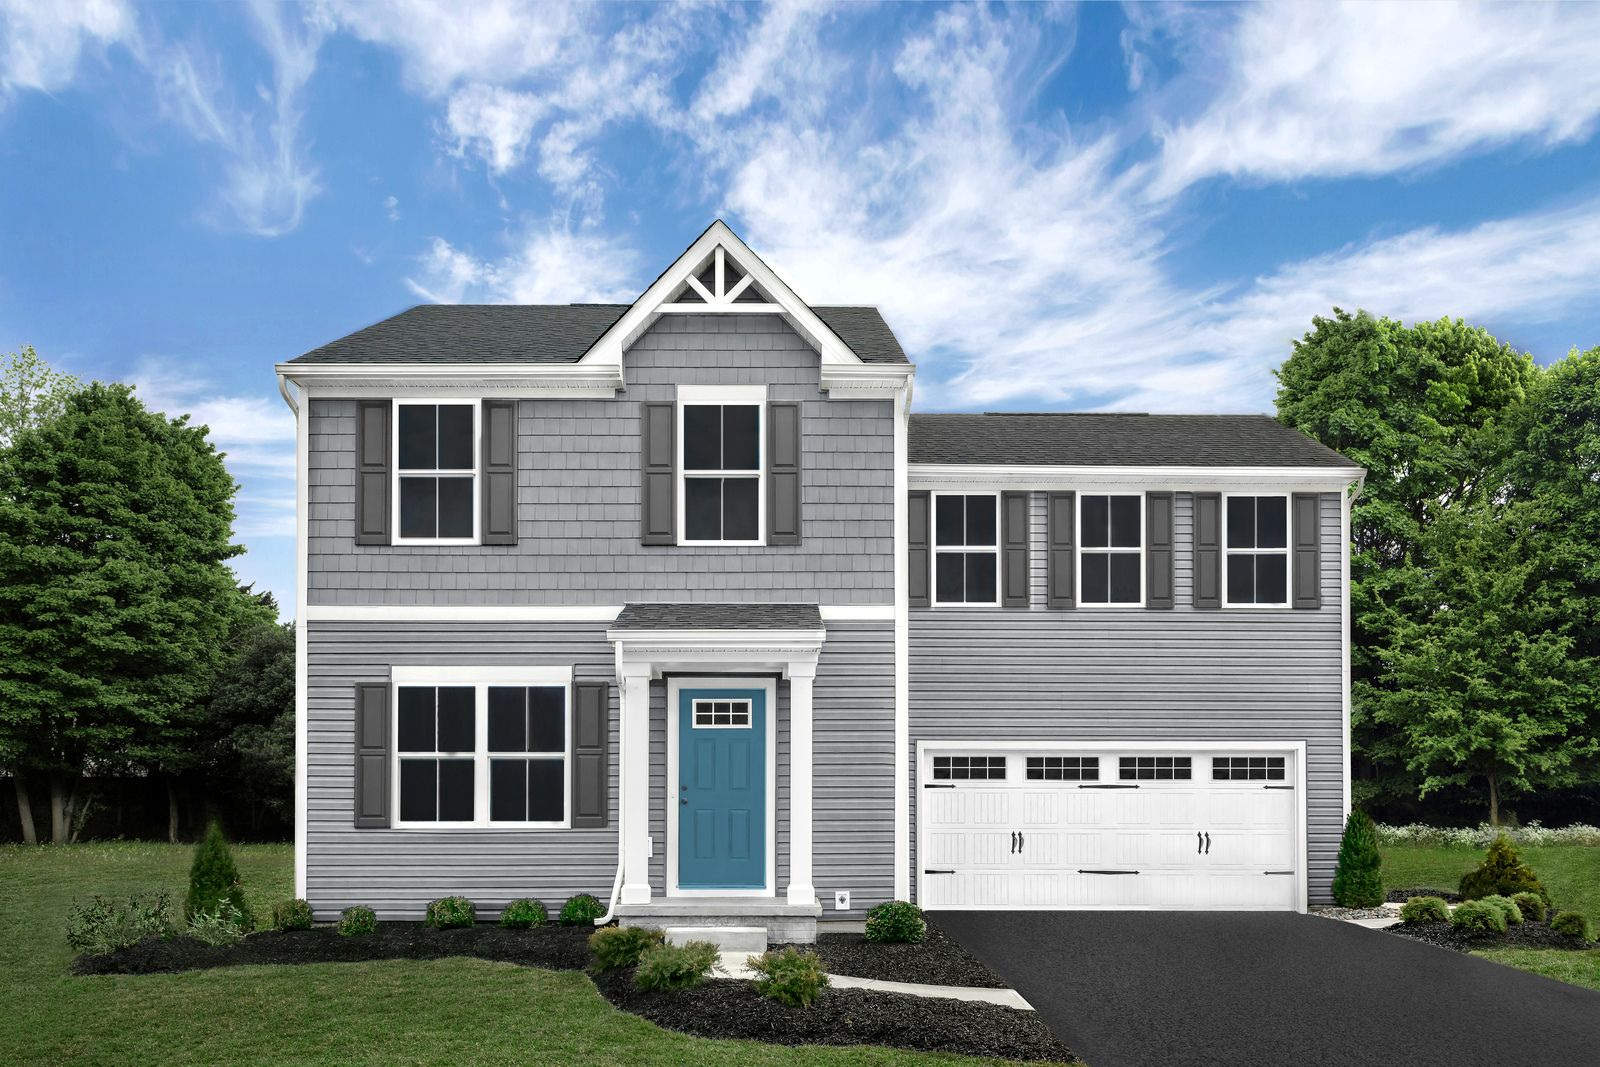 Welcome to Alderleaf Meadows:Millsboro's lowest priced new single-family home community. Less than 1 mile to shopping, dining and healthcare on Rt 113. Click here to join the VIP list for the first opportunity to purchase!